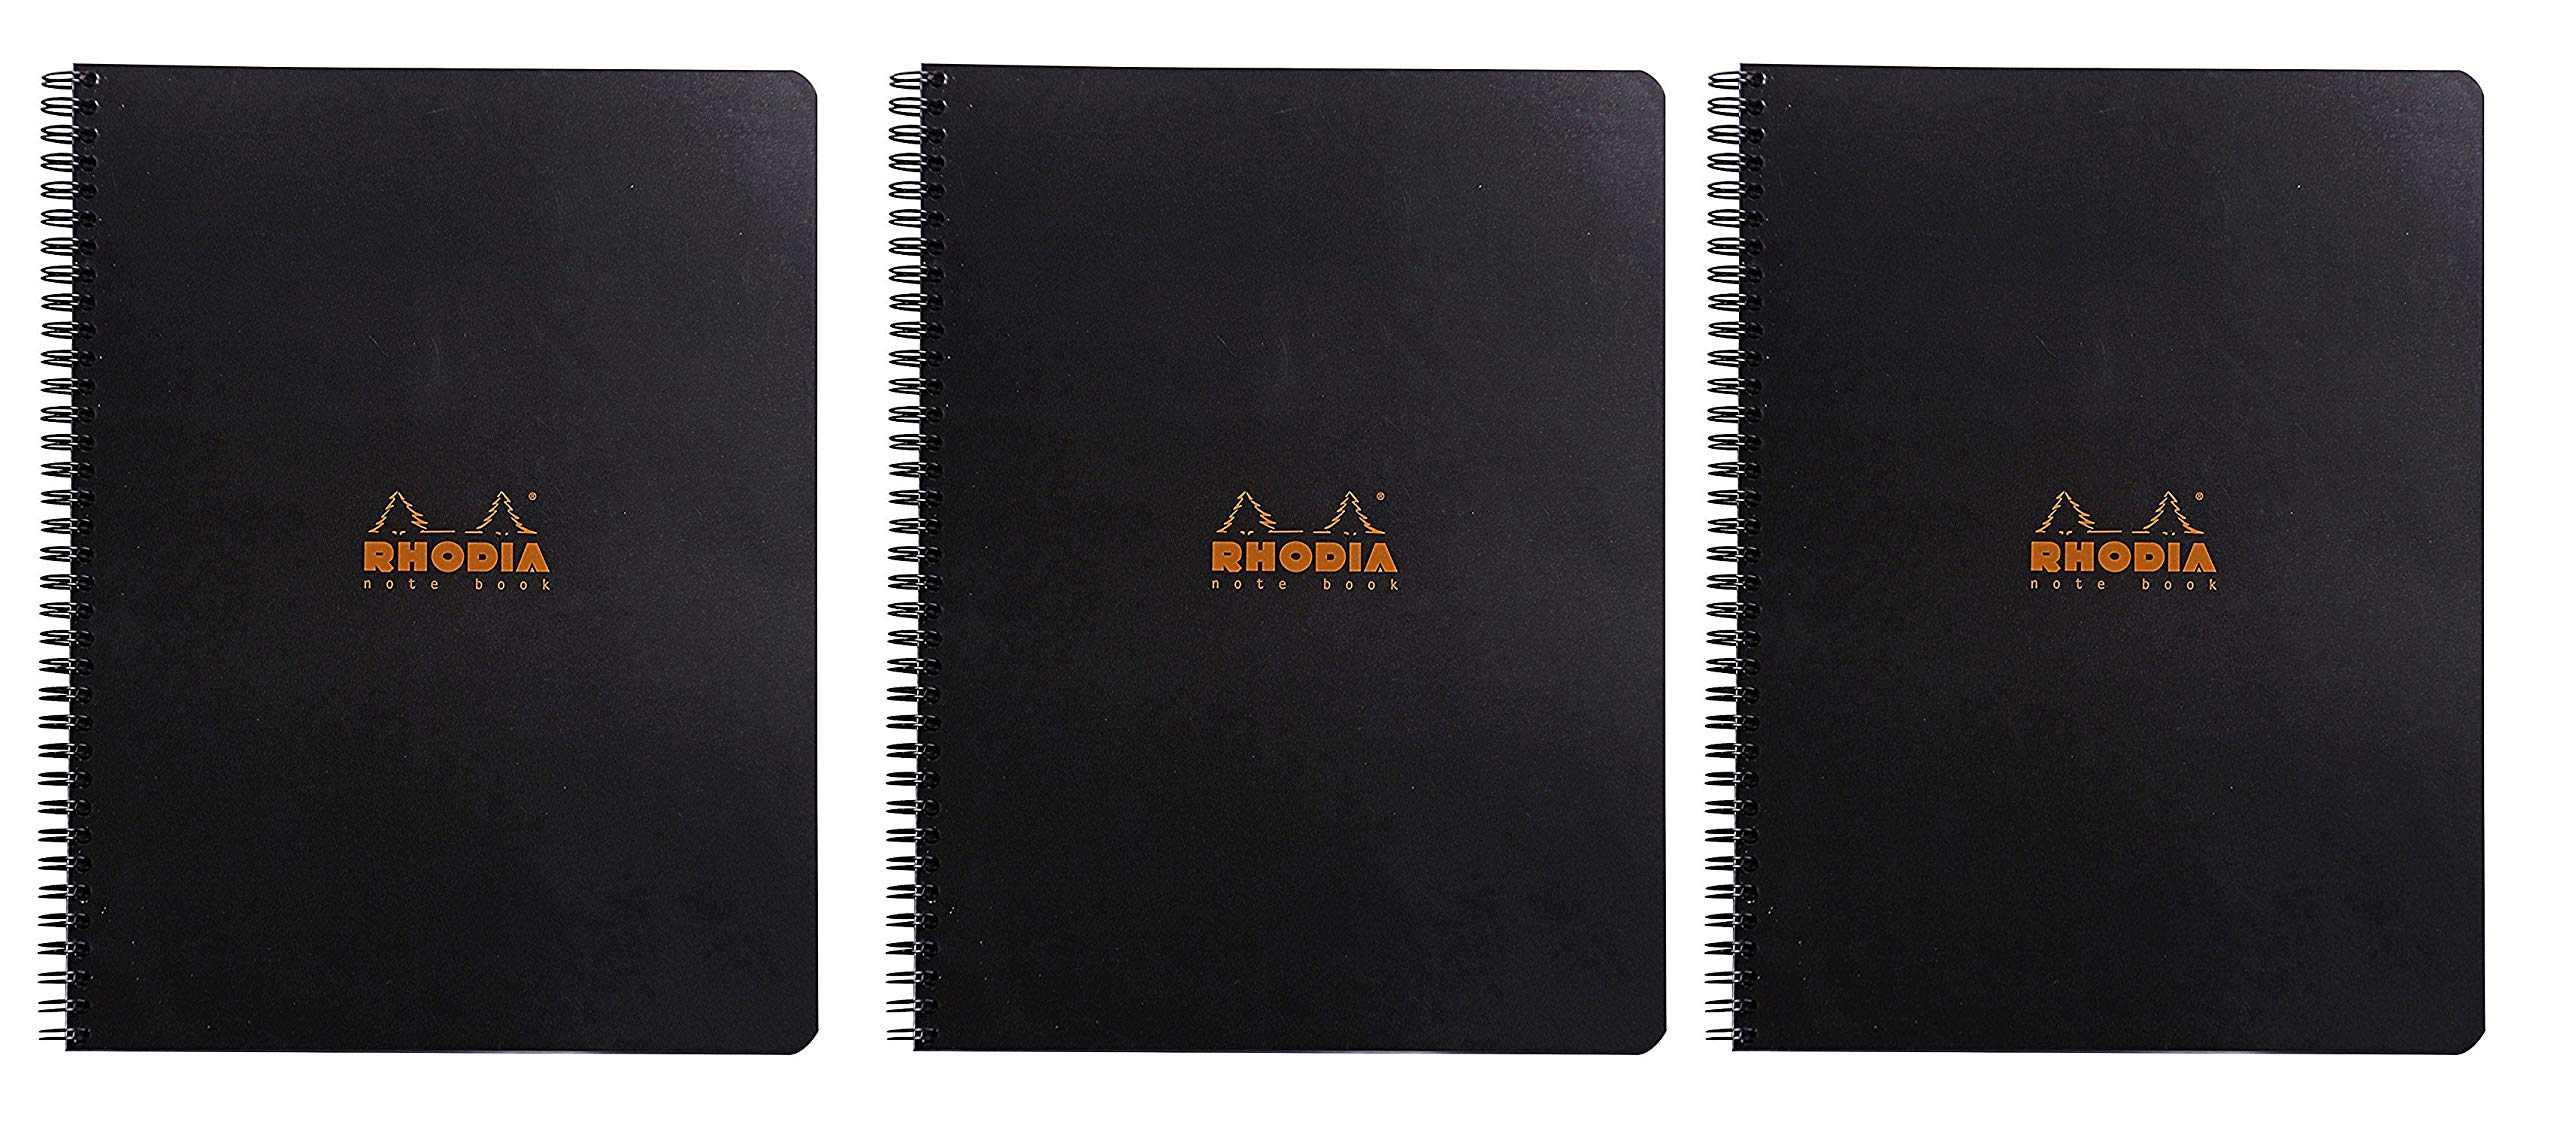 Rhodia Black Graph Notebook 8.25X11.75, Double Spiral, Pack of 3